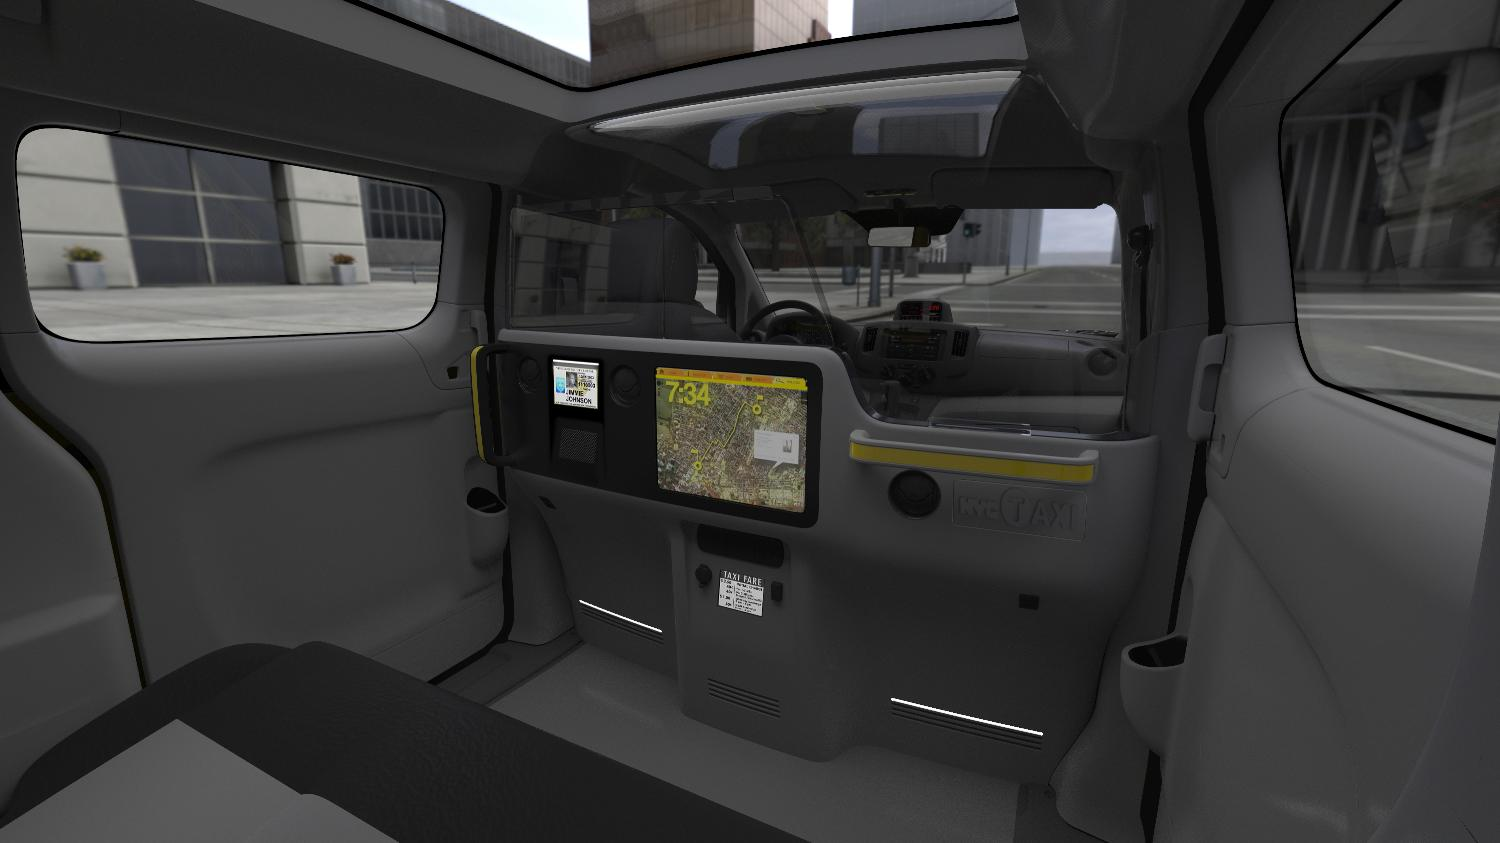 Nissan Nv200 New York Taxi Interior Revealed Autoevolution